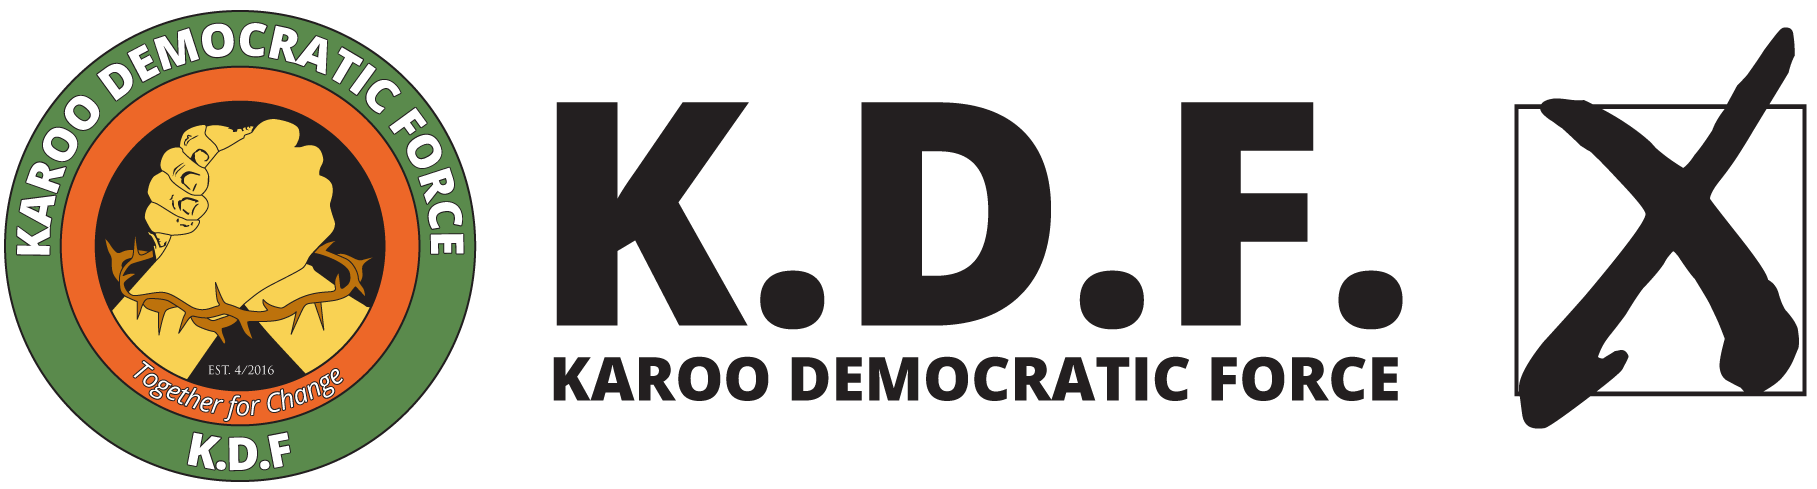 Karoo Democratic Force